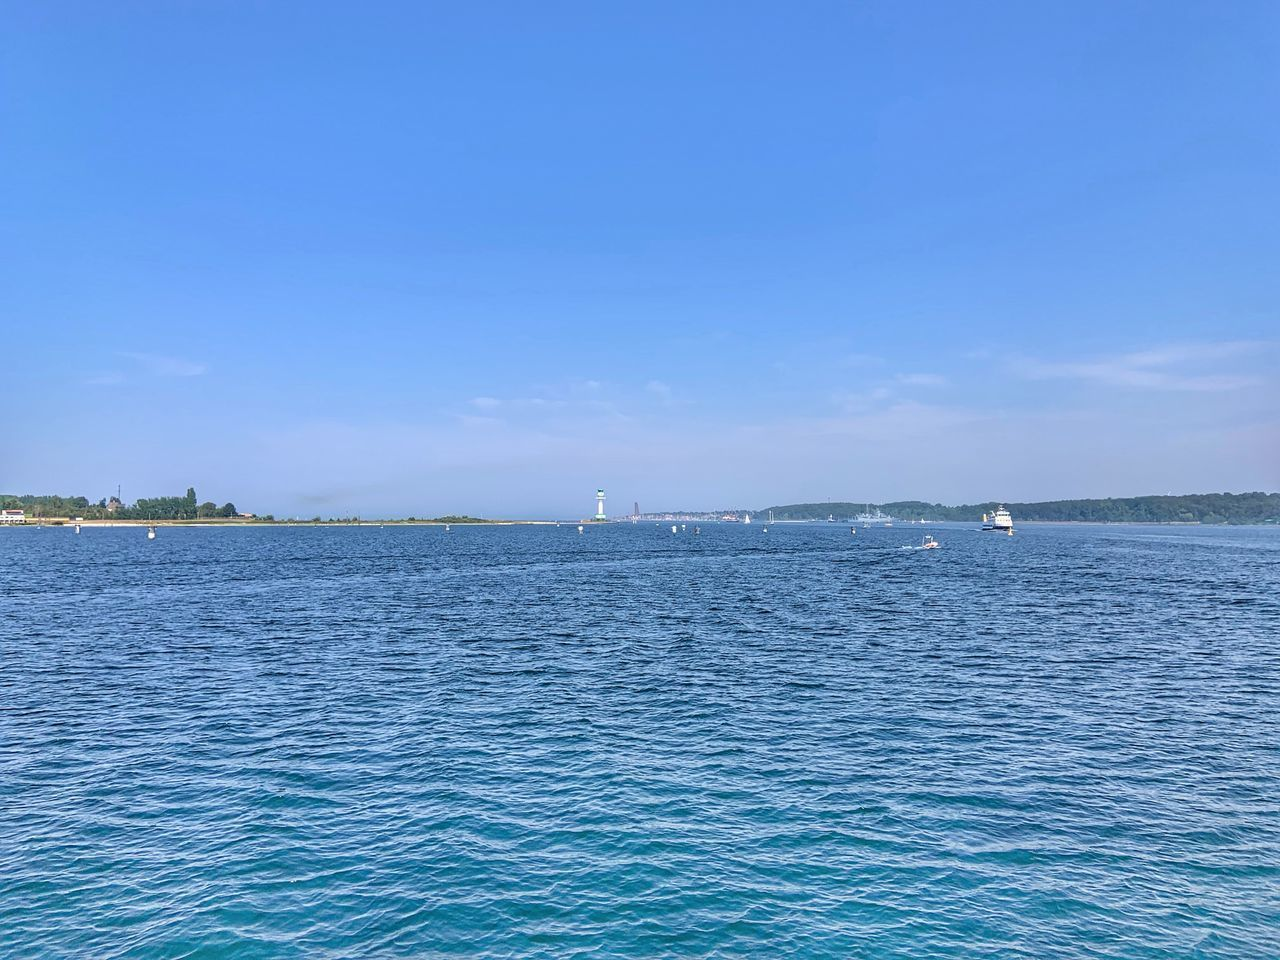 water, sea, blue, scenics - nature, sky, beauty in nature, waterfront, tranquil scene, tranquility, nautical vessel, no people, day, nature, transportation, idyllic, non-urban scene, outdoors, copy space, mode of transportation, sailboat